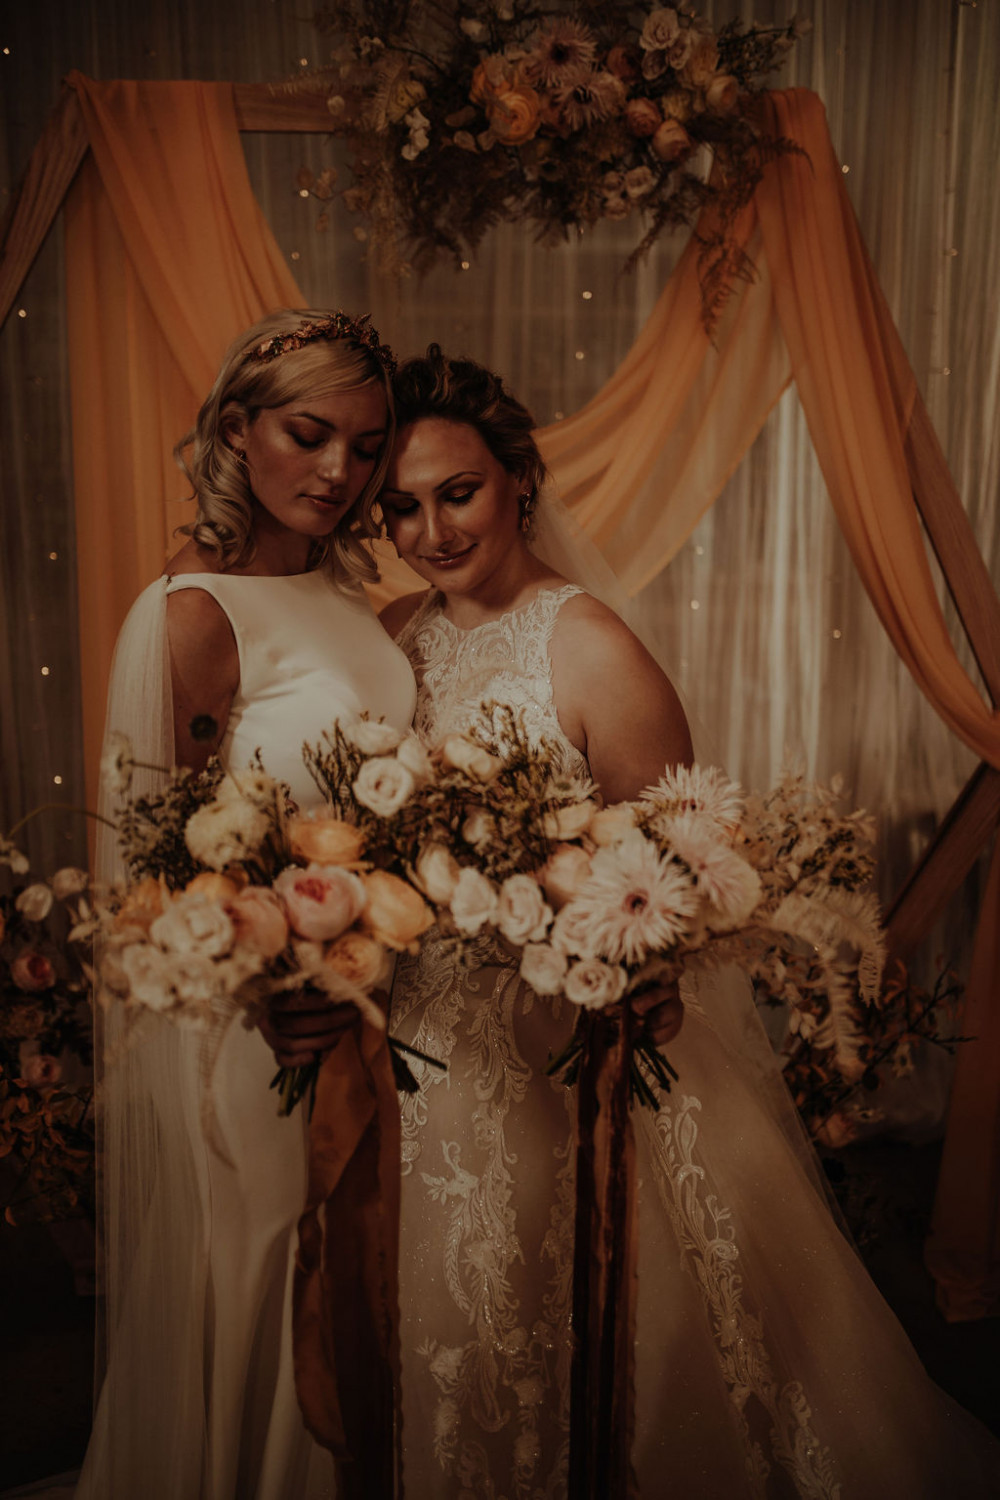 Each bride had different styles to reflect their individual preferences and styles, but both had radiant skin and wore accessories by Saint Beth Official. - Make Me Bridal Artist: Chrys Chapman. Photography by: Esme Whiteside. #boho #romantic #glowingskin #twobrides #sleekhair